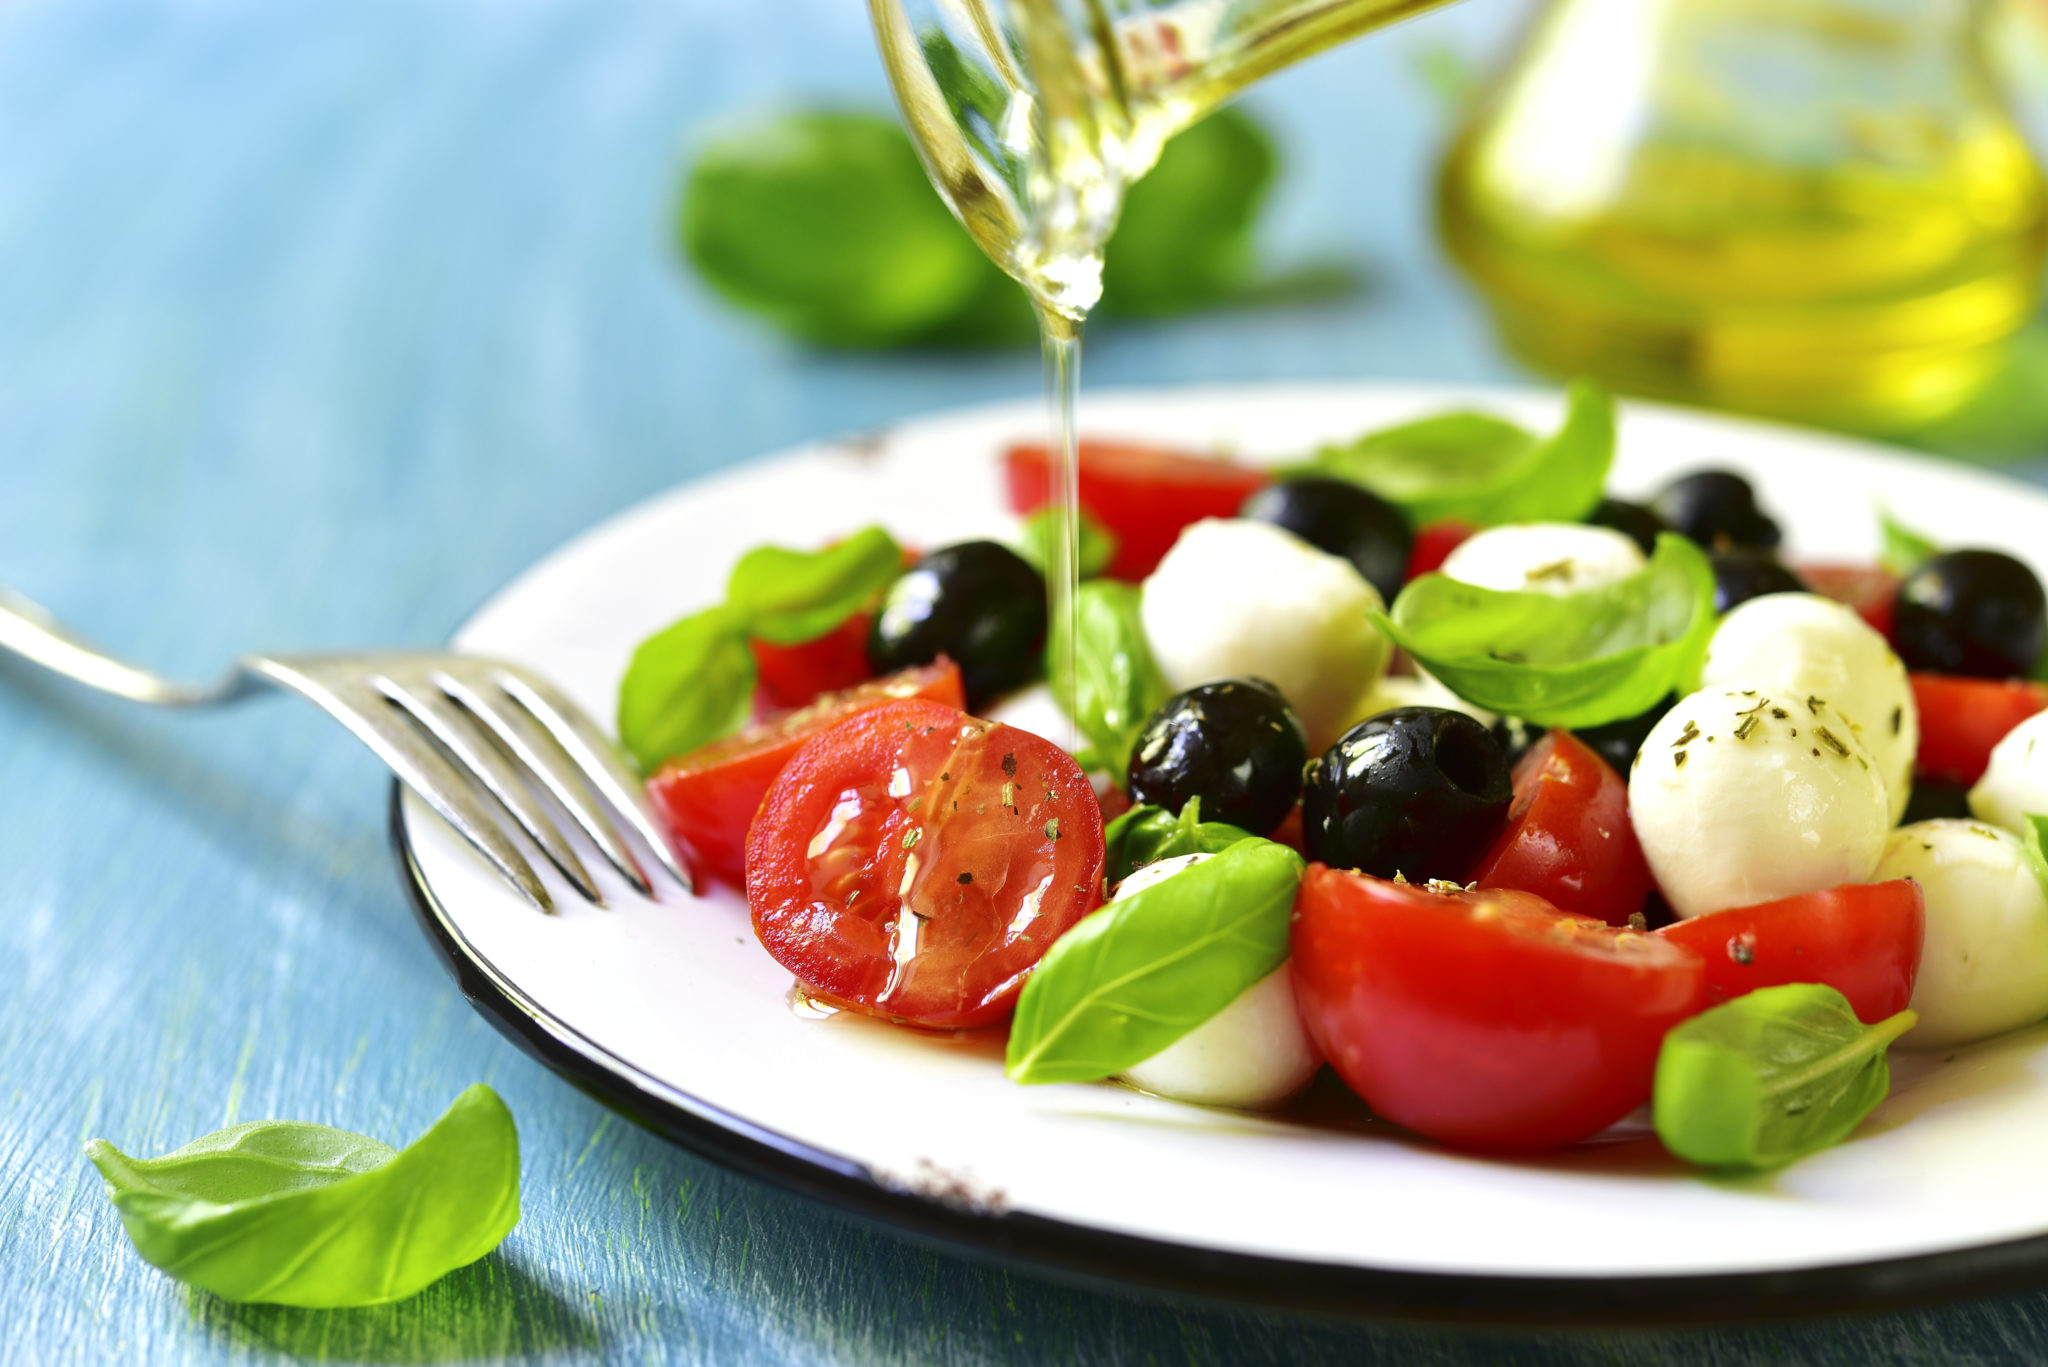 Mediterranean diet and EVOO as cancer-fighting foods